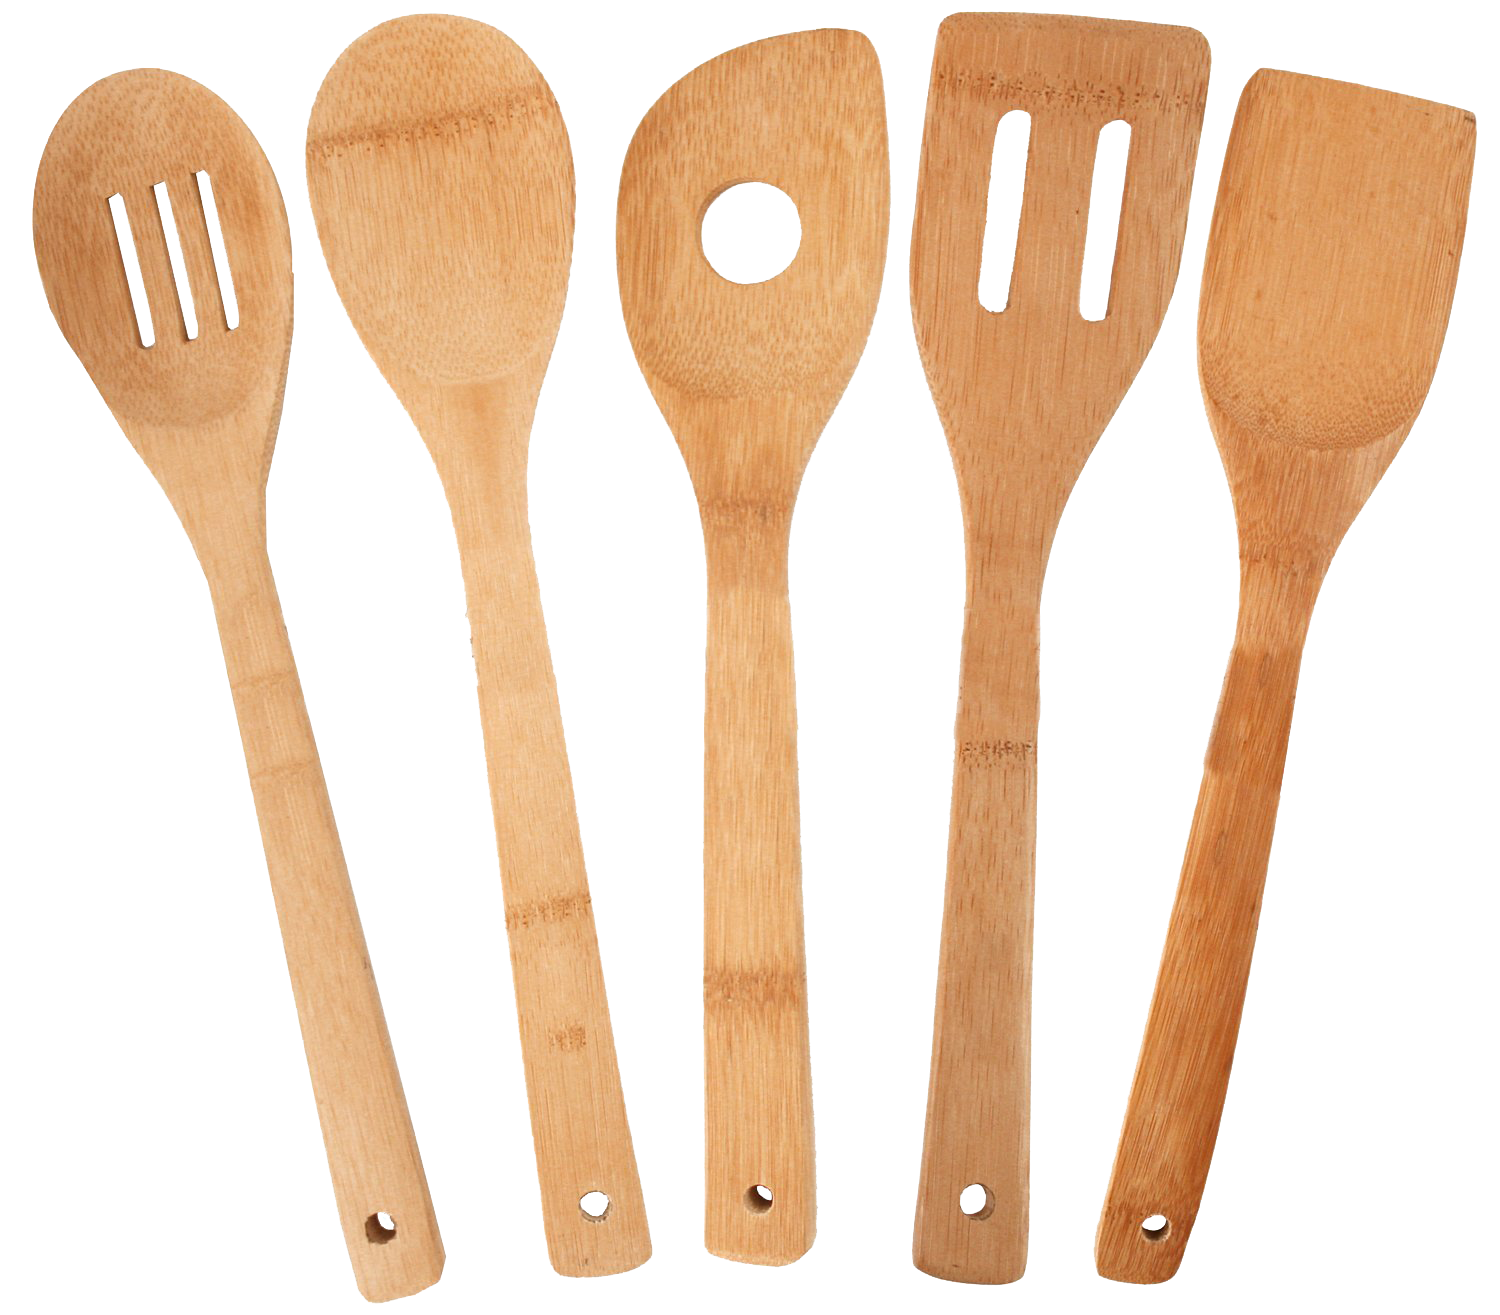 Cooking Tools PNG - 17339